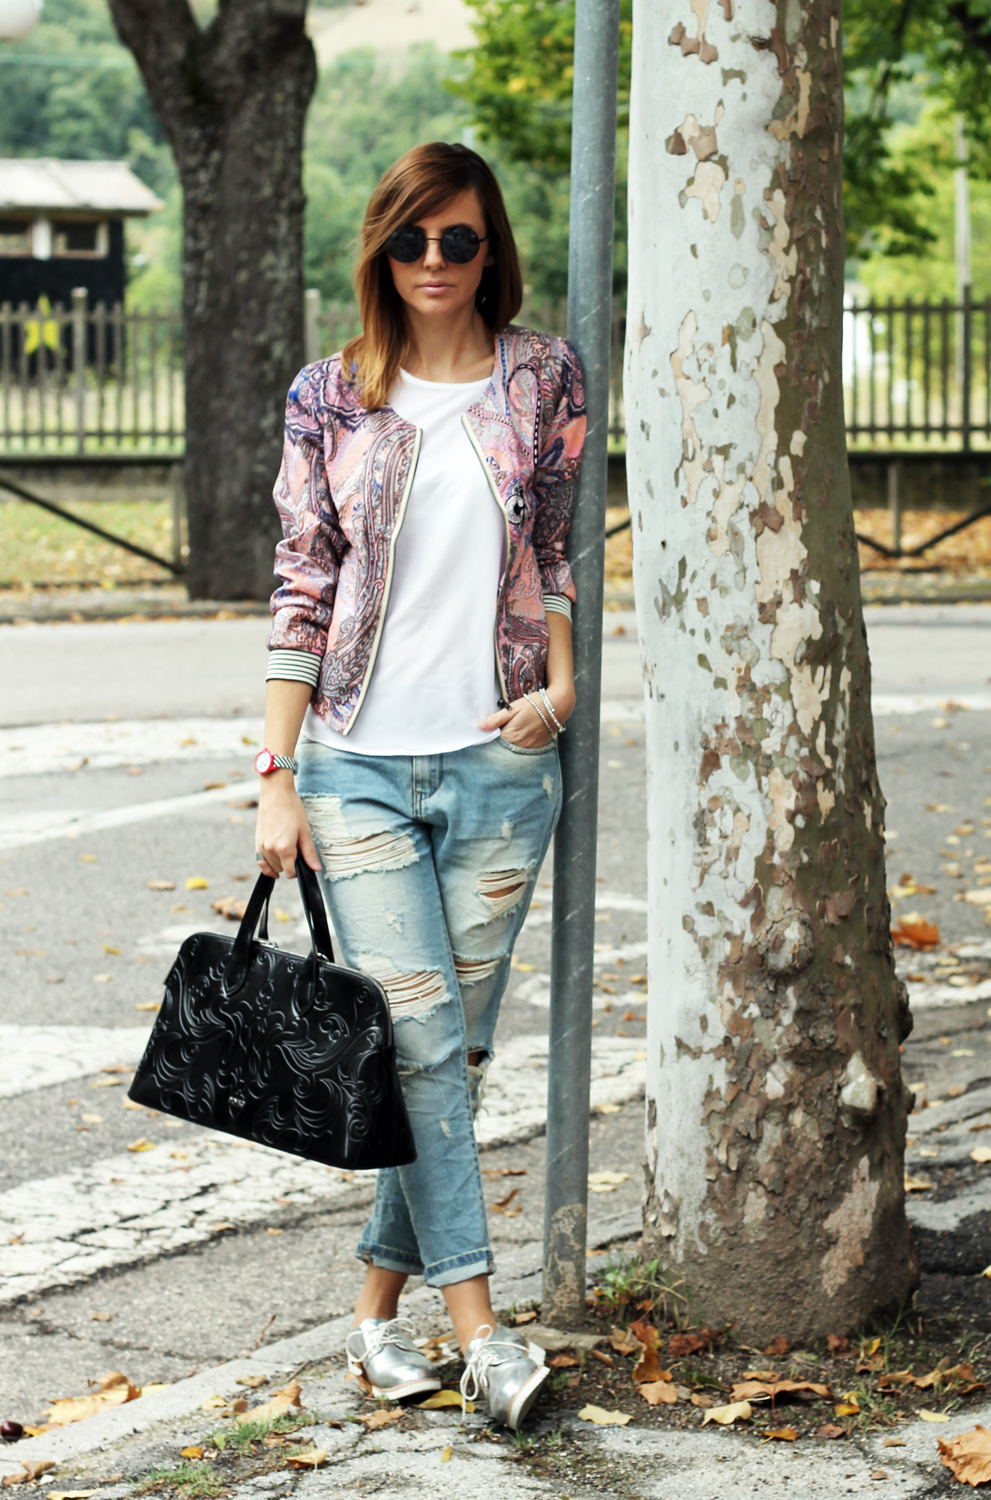 3-outfit-sportivo-jeans-bomber-rosa-stringate argento